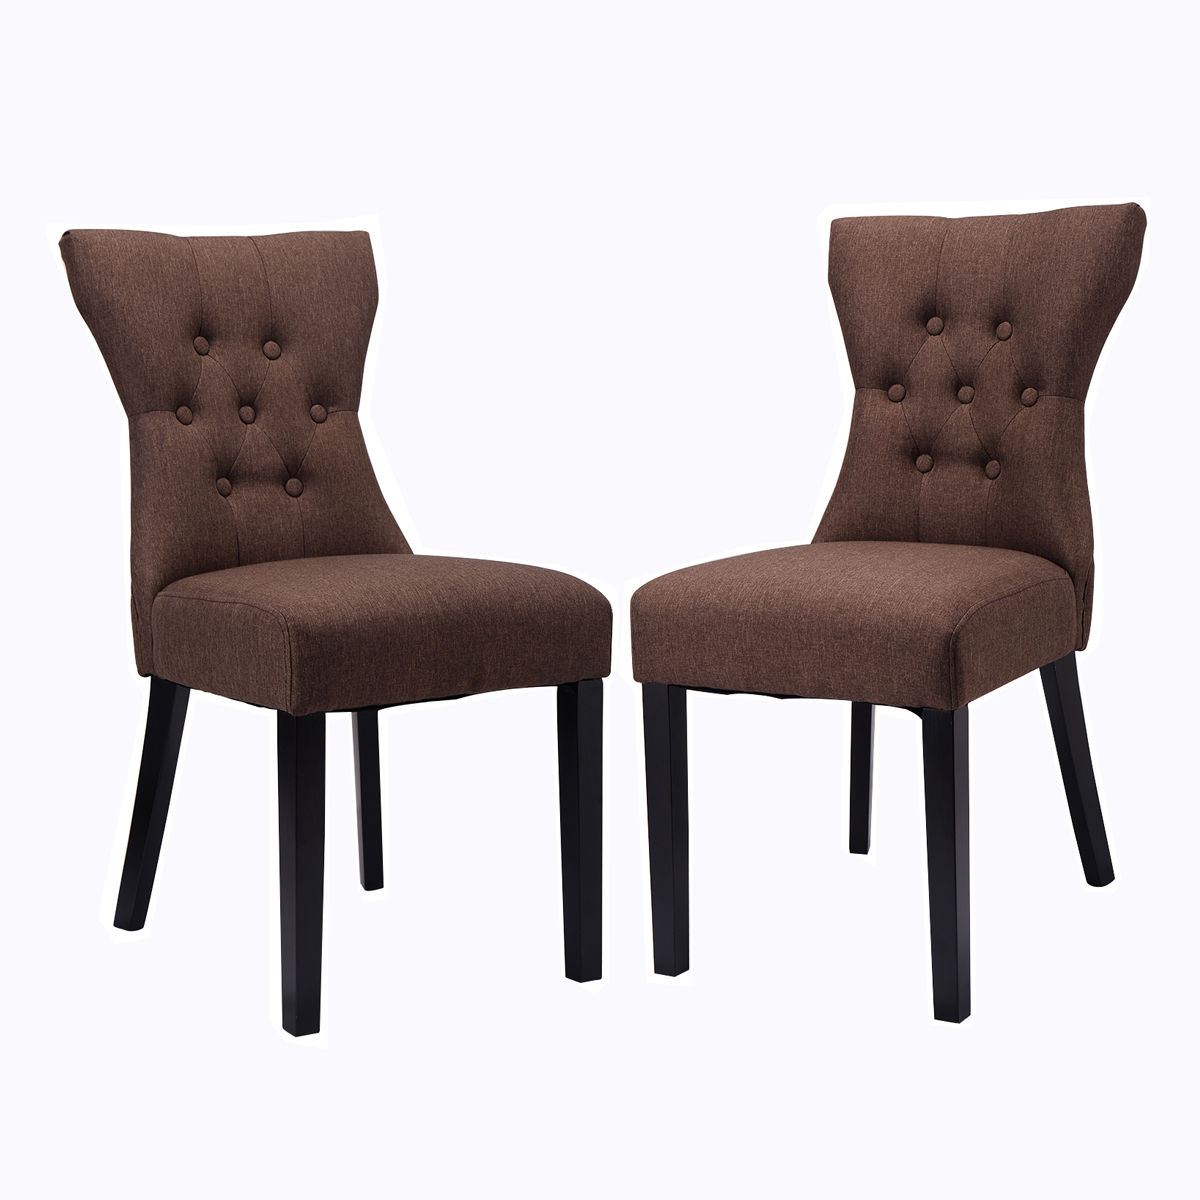 Costway 2PCS Dining Chair Modern Elegant Chair Home Kitchen Living Room Furniture Brown by Costway